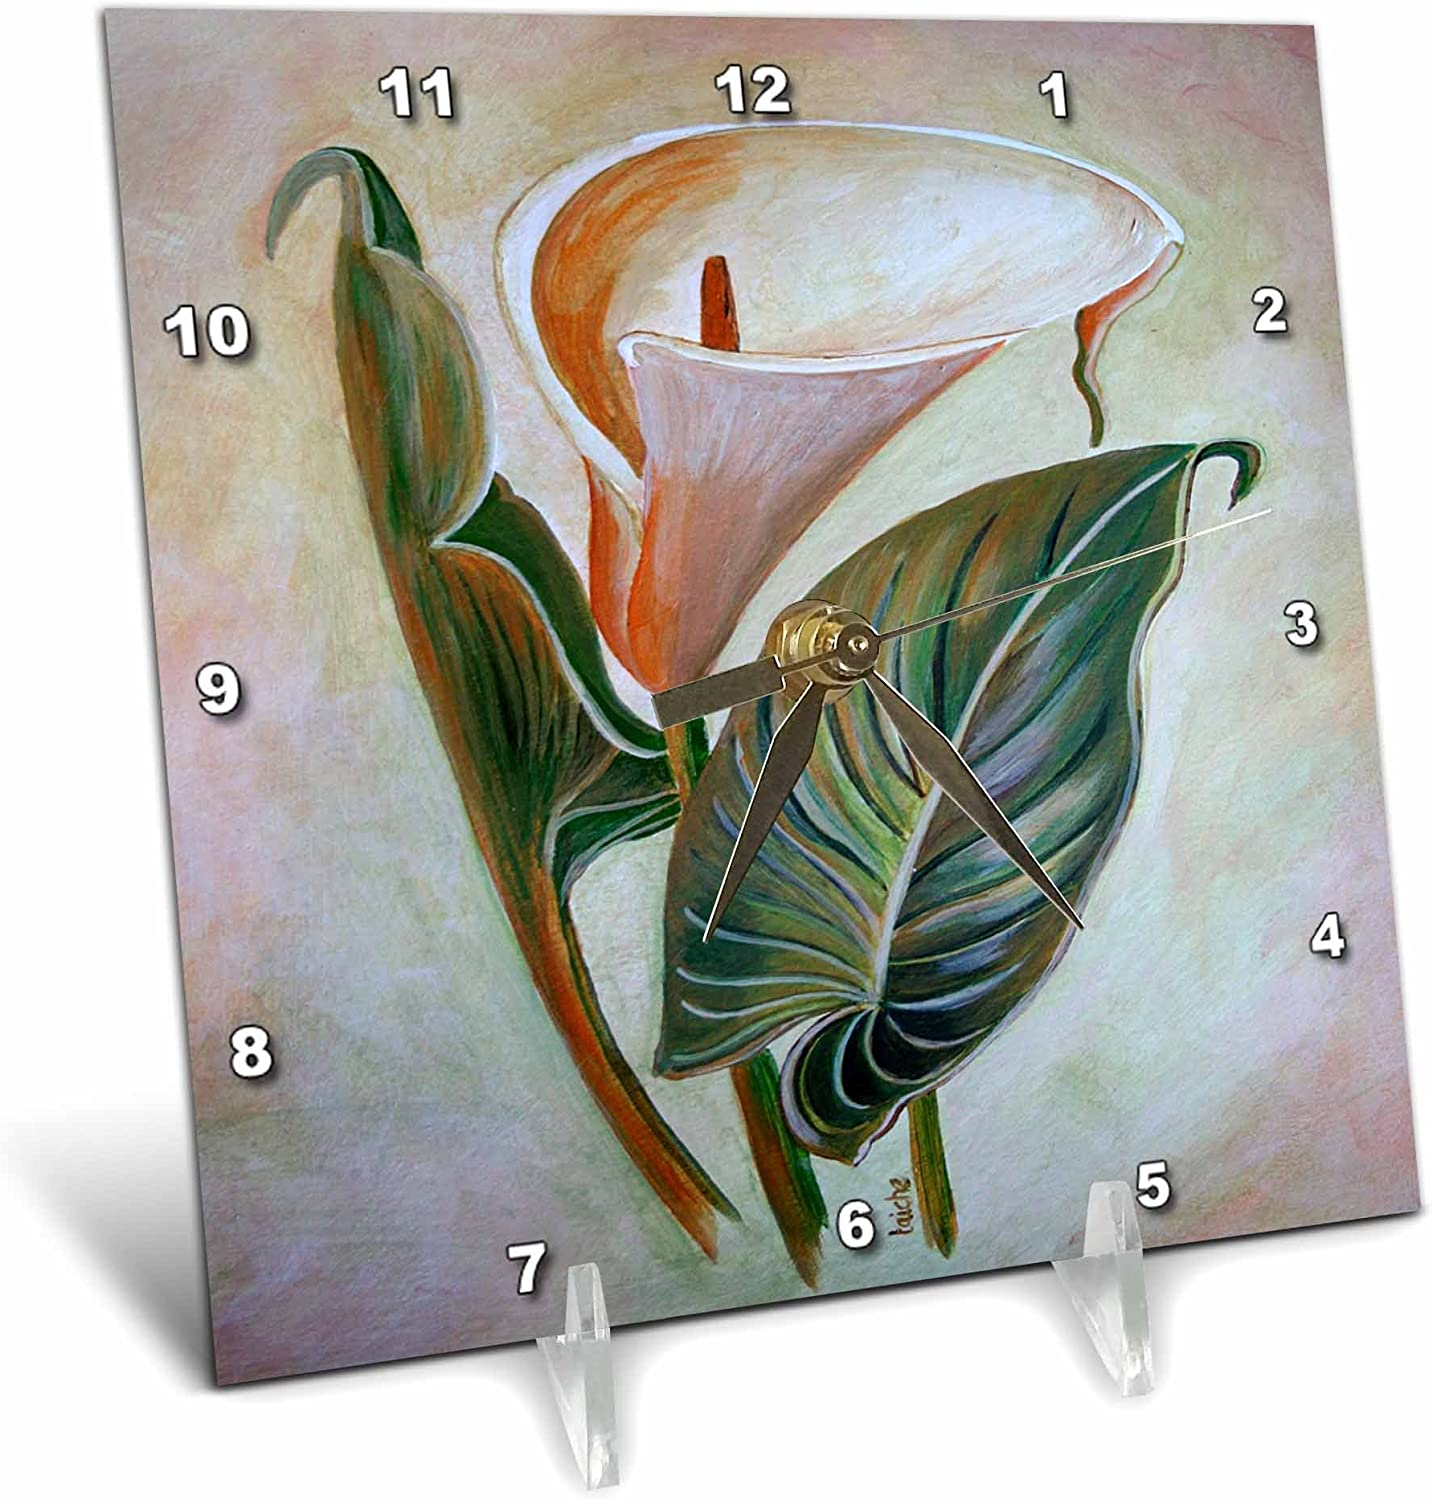 3dRose dc_55583_1 Calla Lily Botanical, Calla, Elegance, Floral, Flower, Garden, Lilies, Lily, Love, Macro, Pure Desk Clock, 6 by 6-Inch